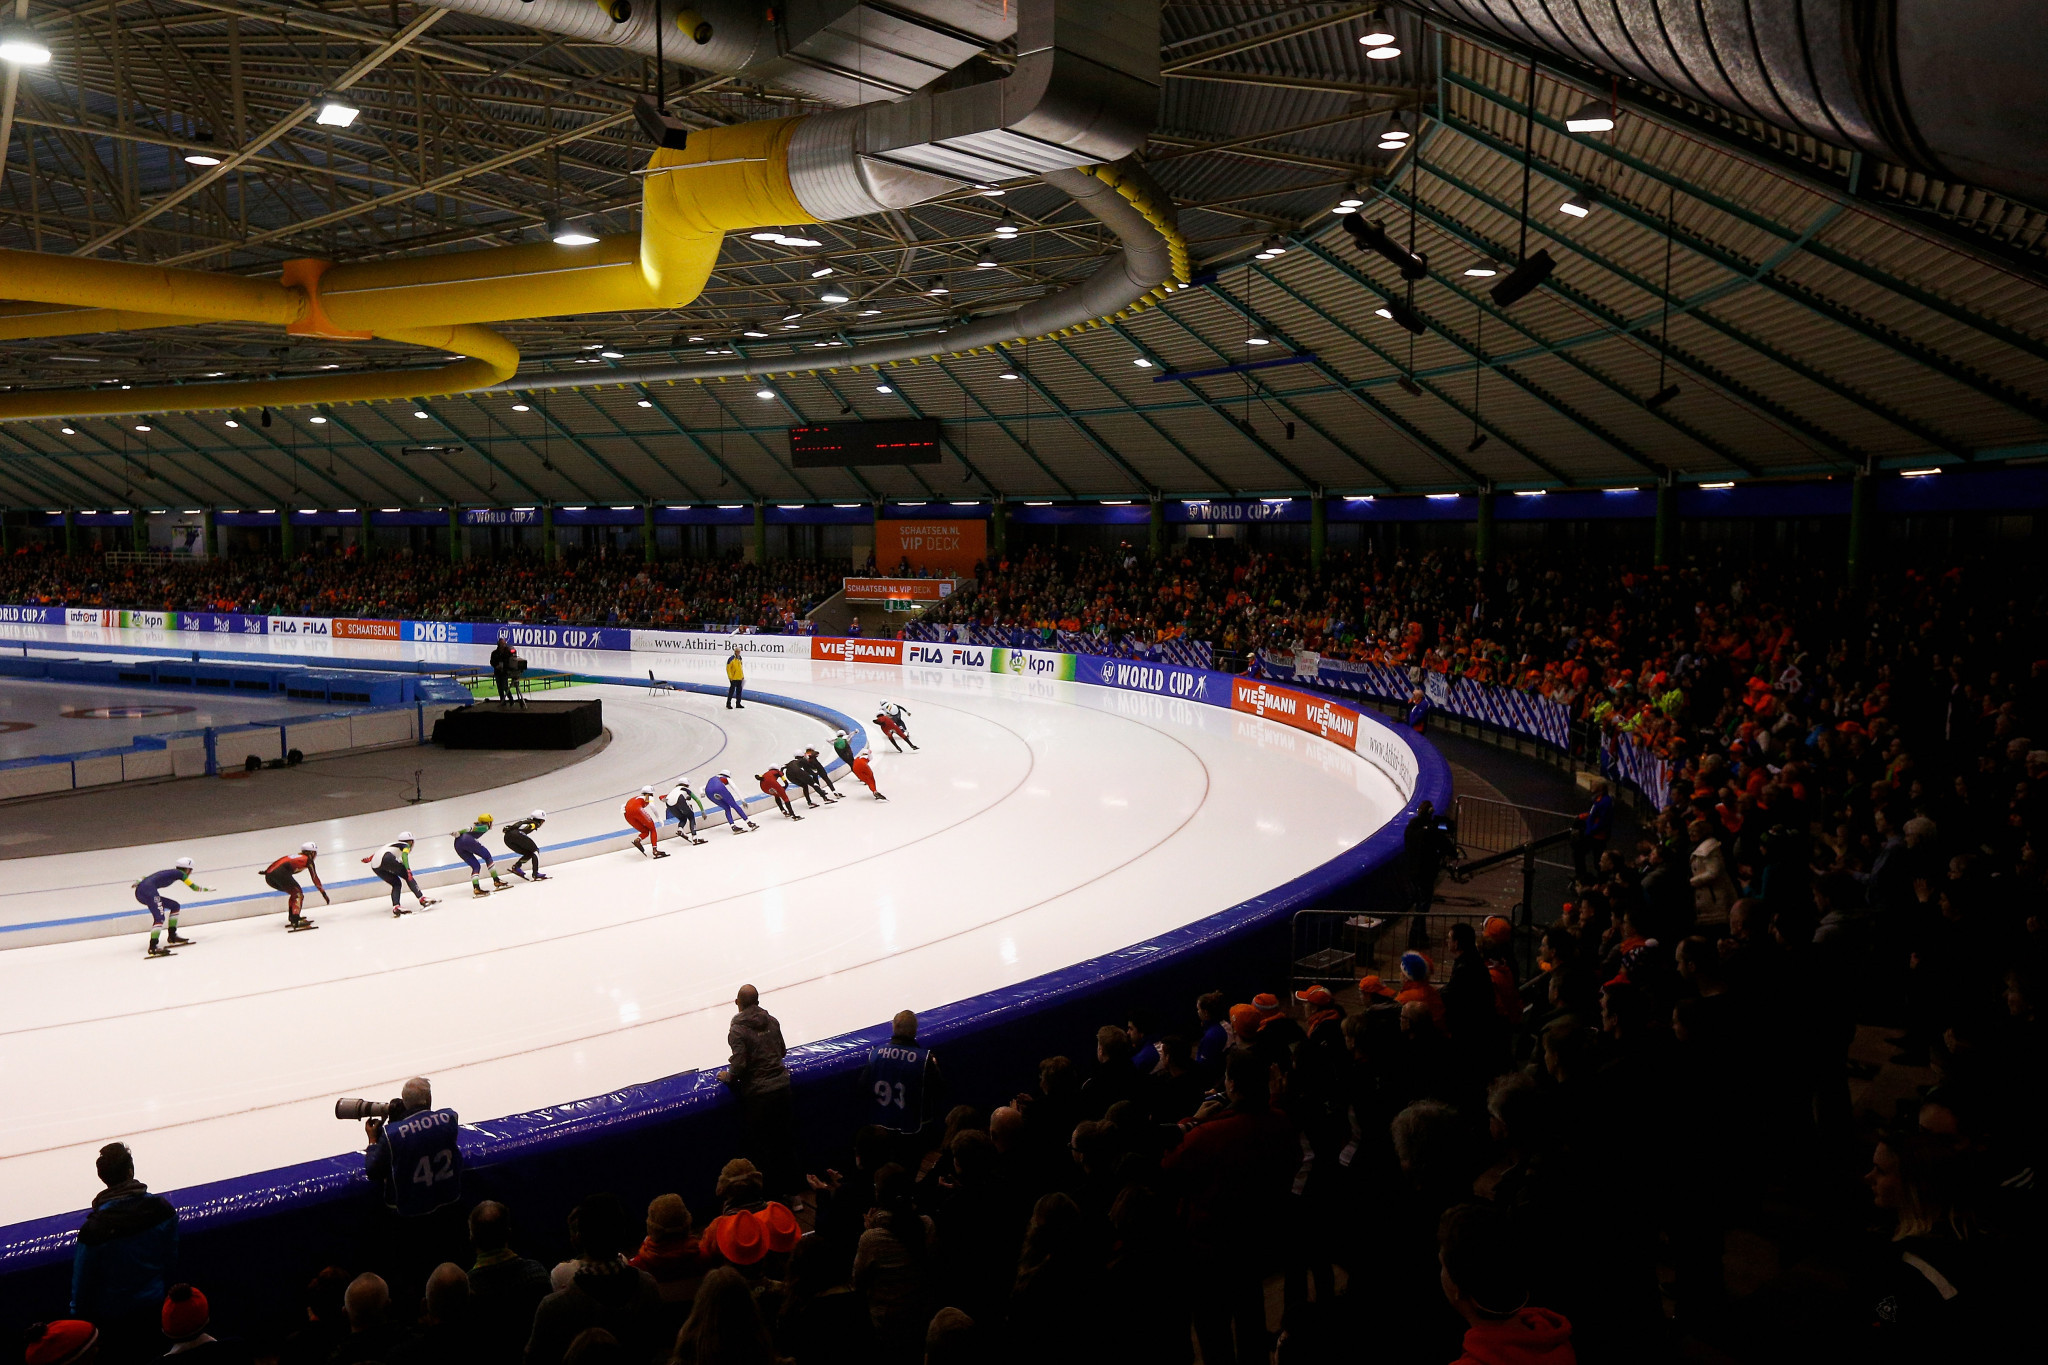 The ISU is welcoming applications to host Championships between 2023 and 2026 - with a total of 36 competitions up for grabs ©Getty Images